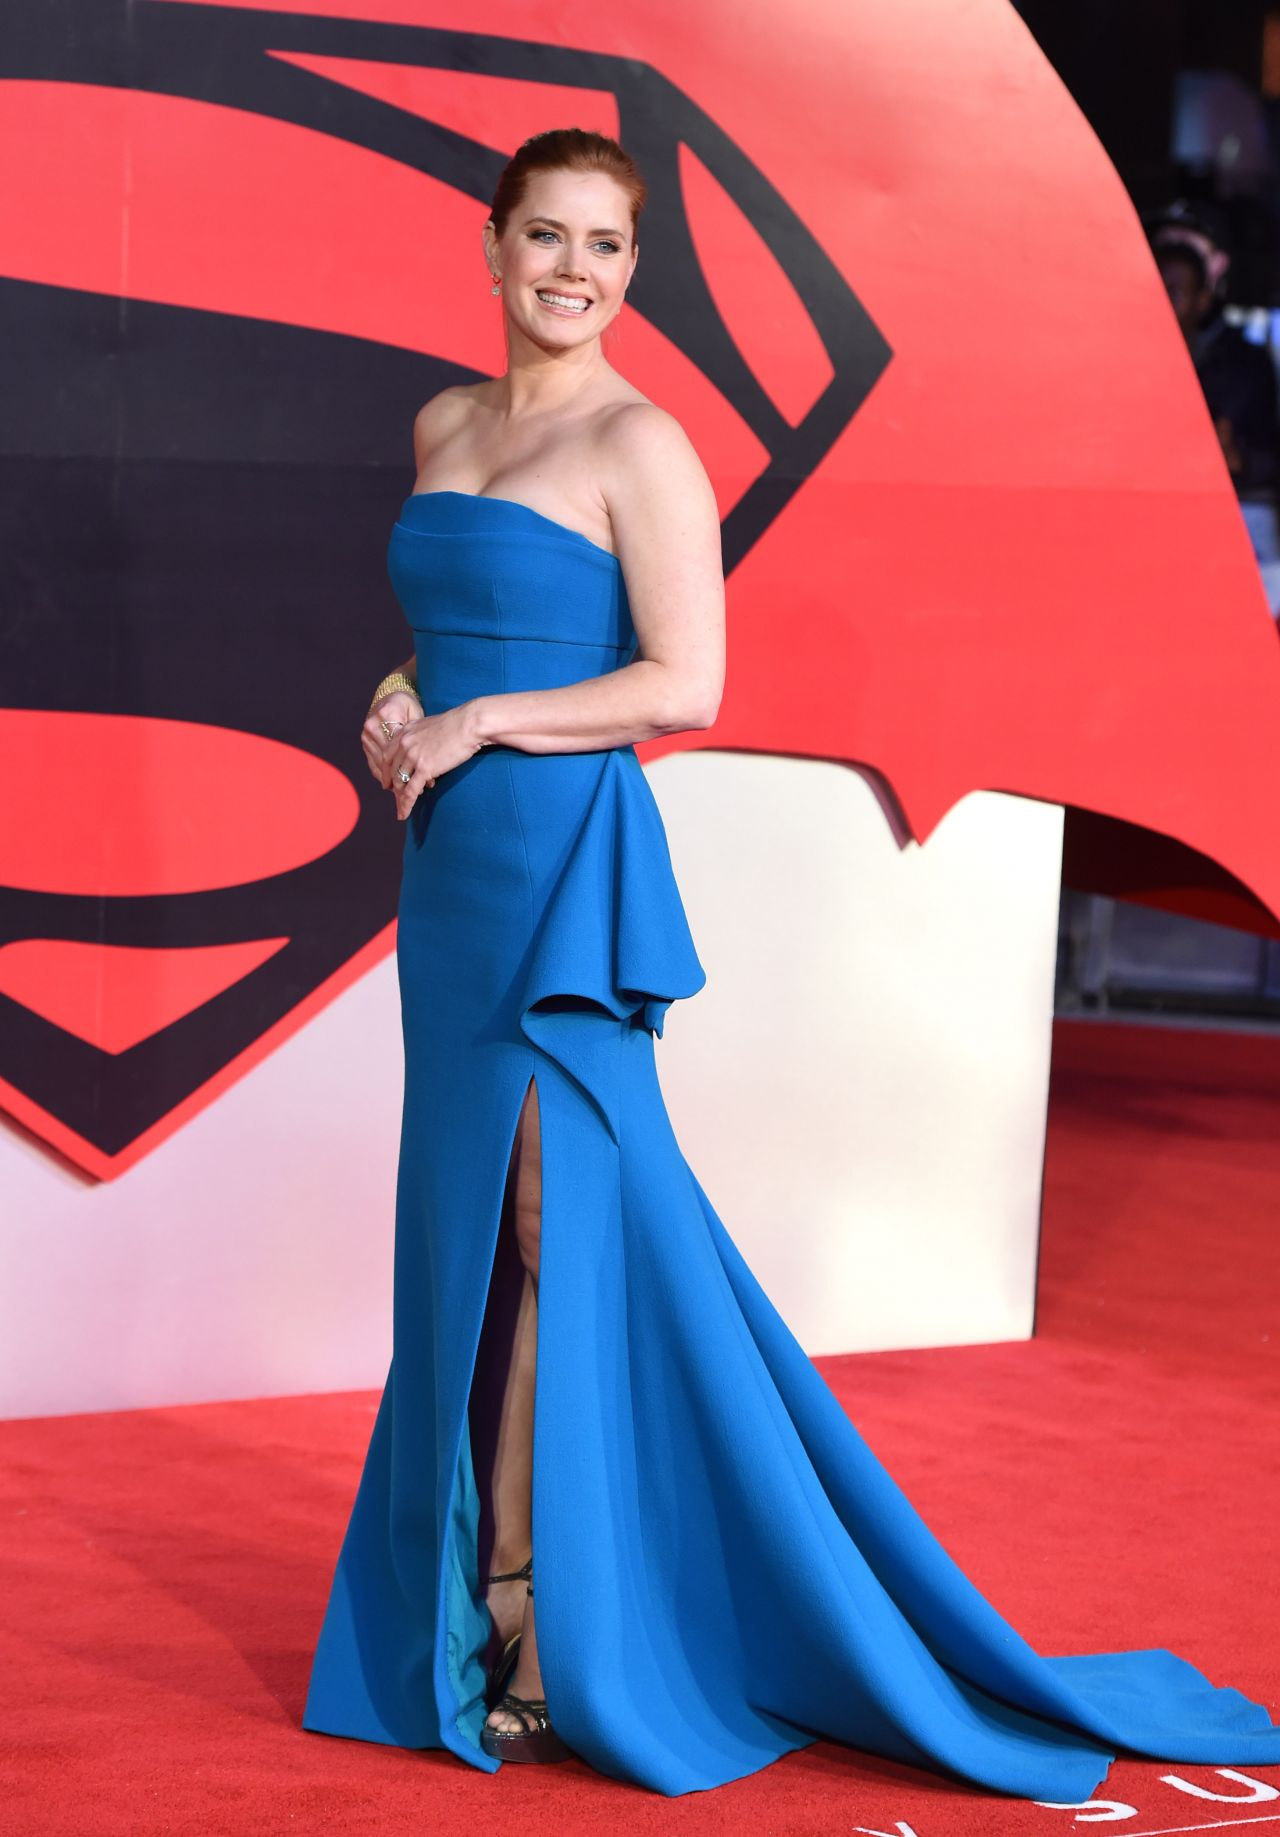 amy-adams-batman-v-superman-dawn-of-justice-premiere-in-london-uk-3-22-2016-6-1